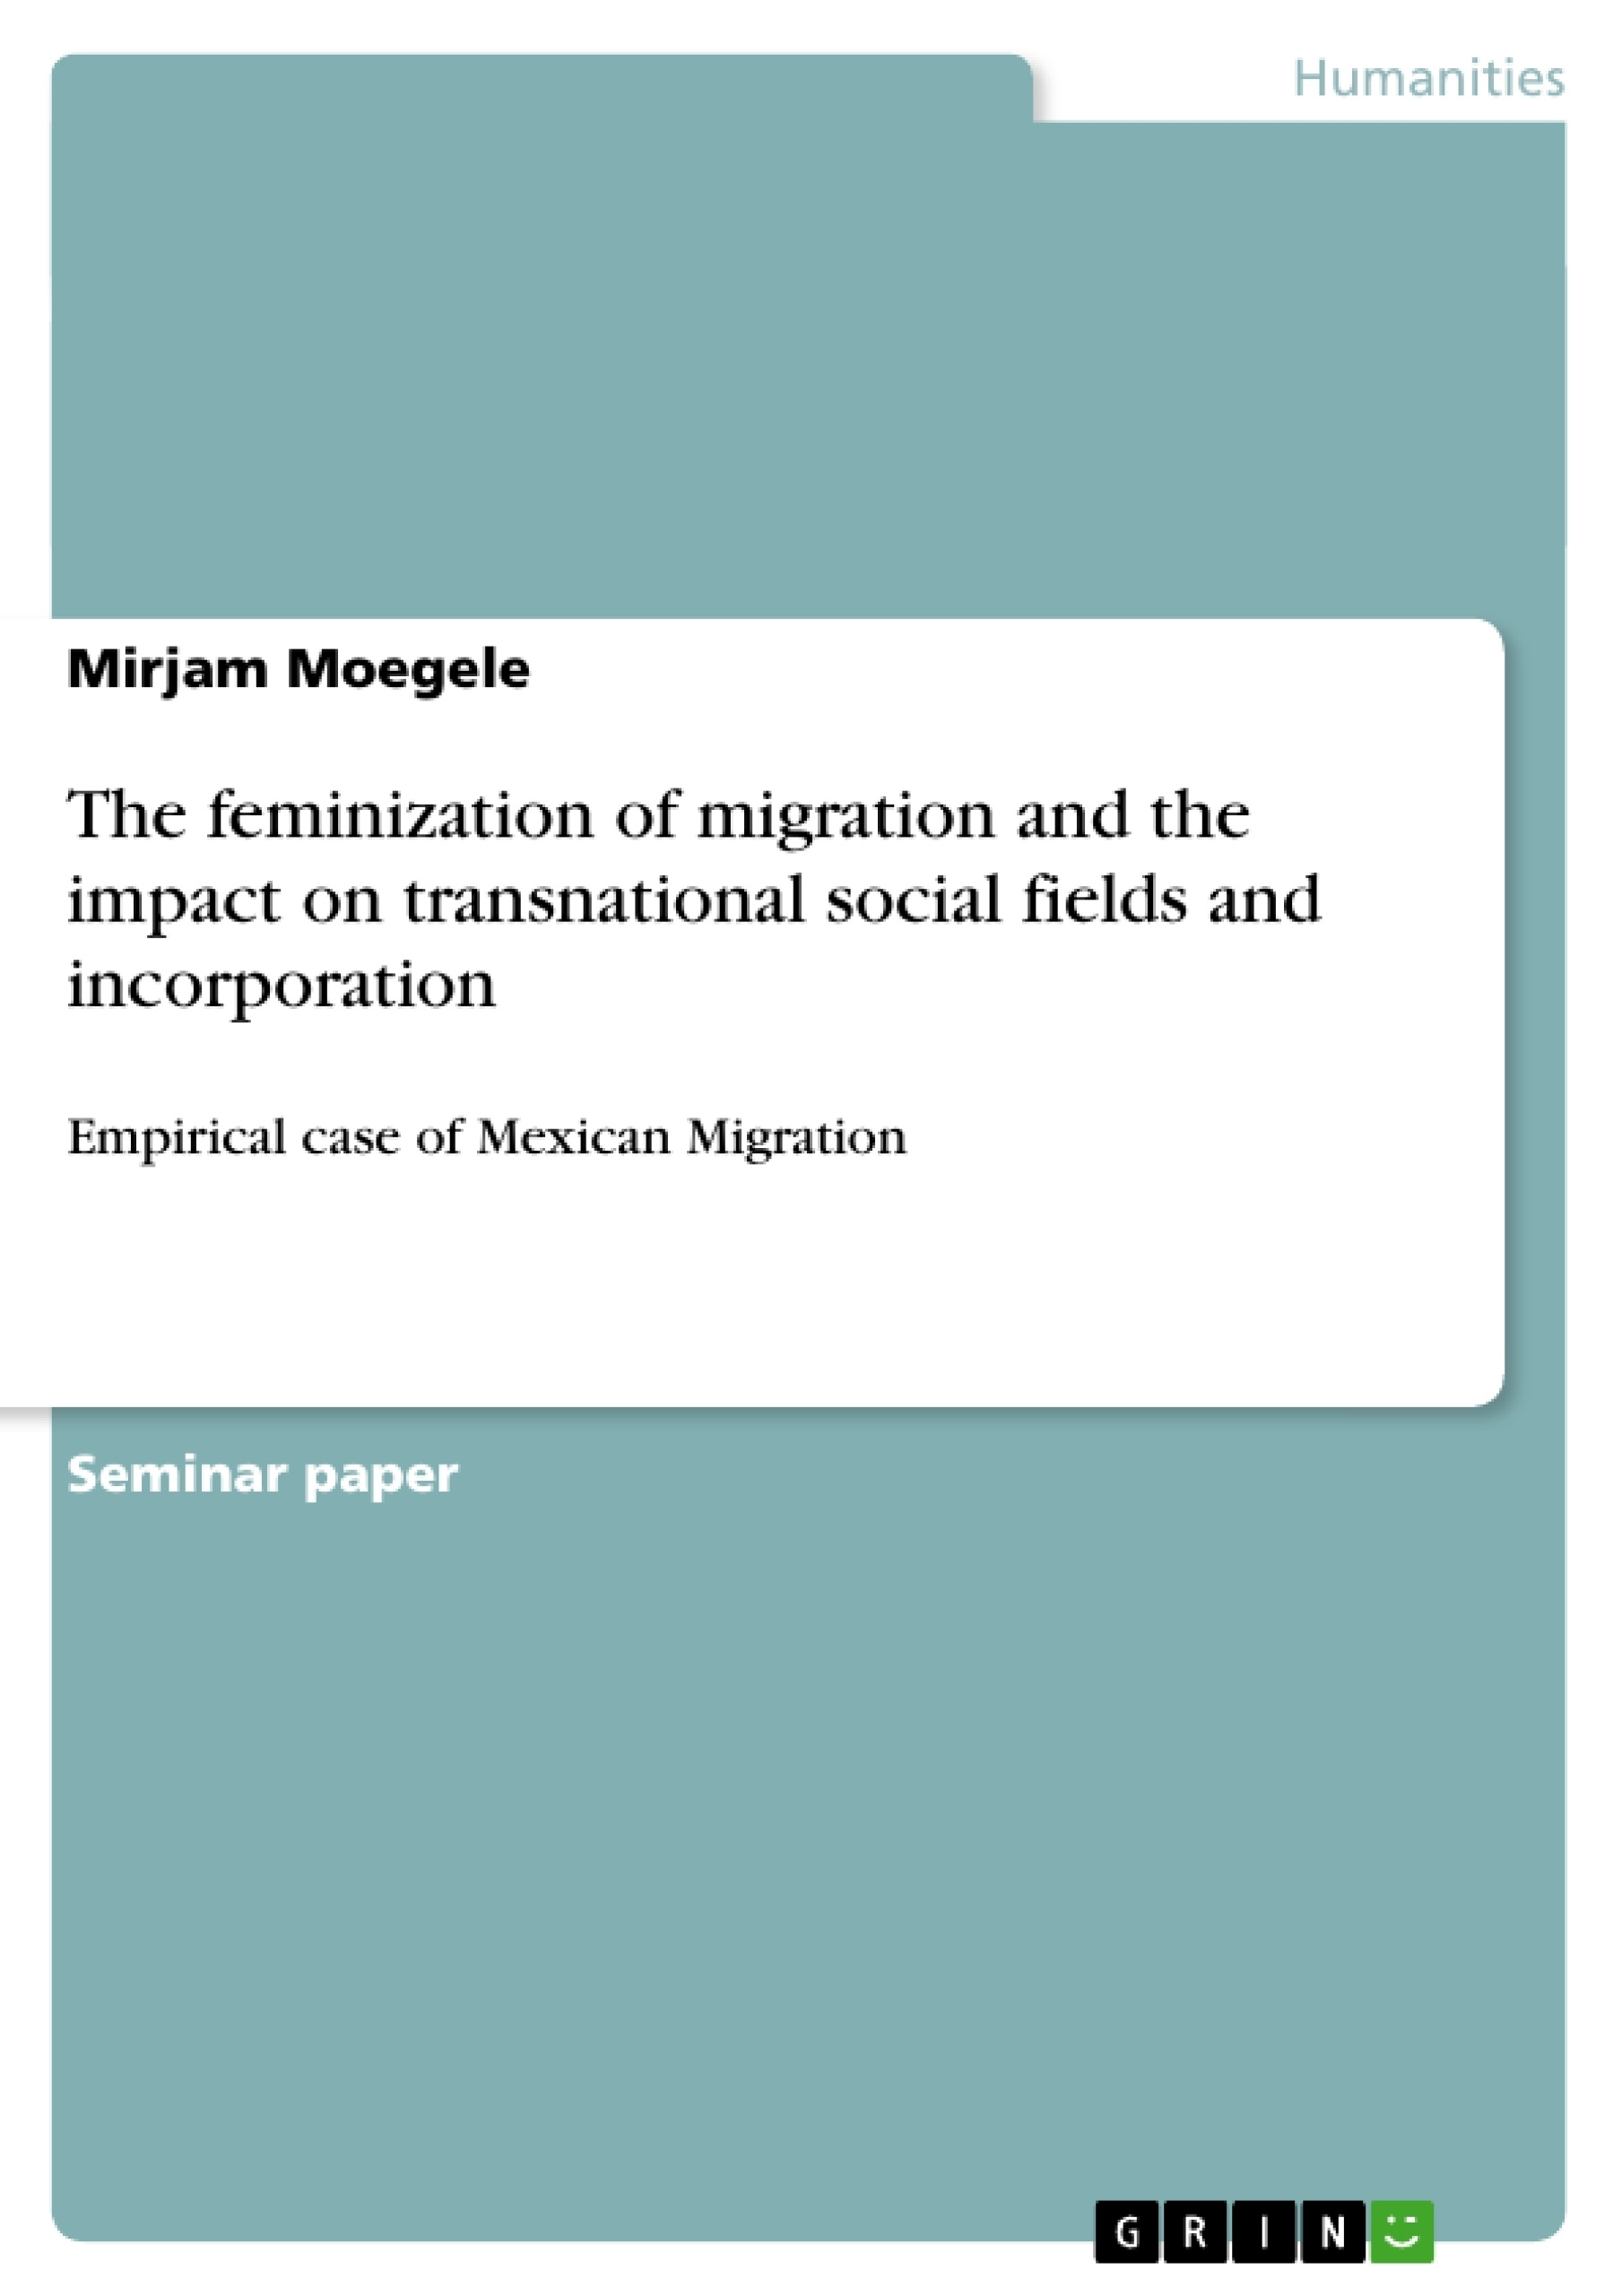 Title: The feminization of migration and the impact on transnational social fields and incorporation